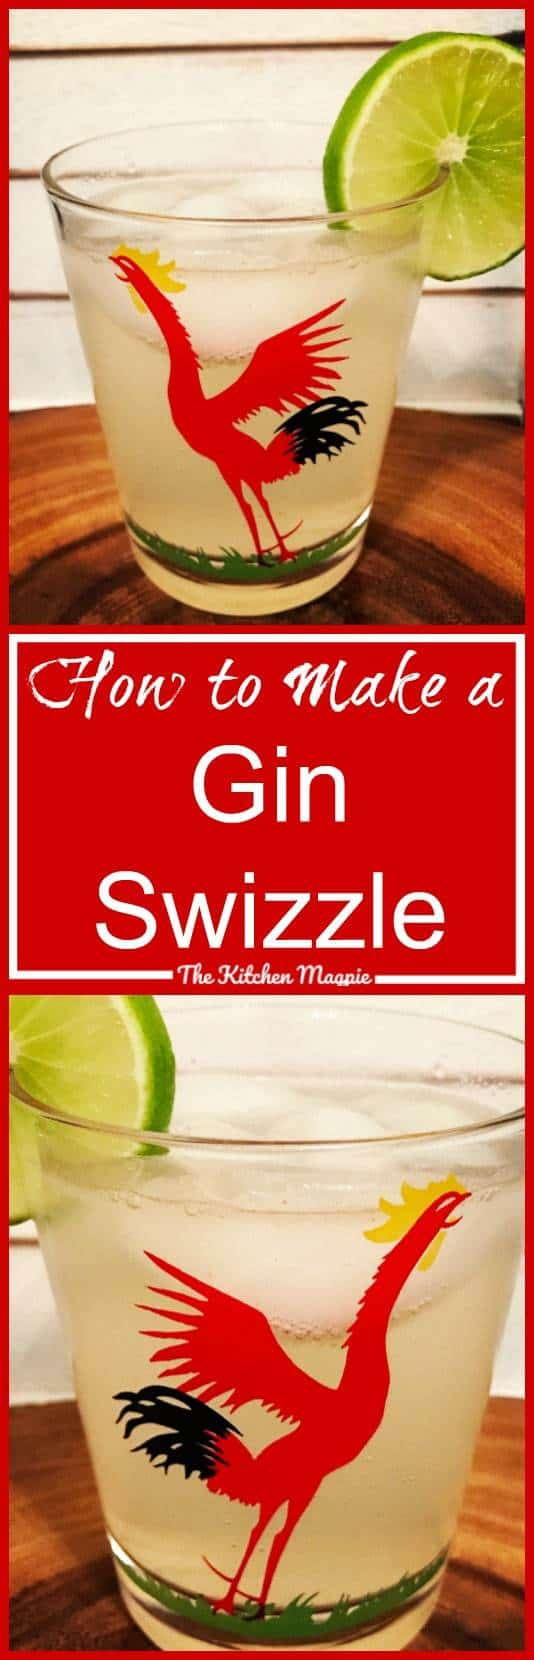 Juice of 1 lime 1 tsp simple syrup 2 oz club soda 2 oz dry Gin 2 dashes of bitters Directions: Combine ingredients and shake, pour over ice and add club soda.